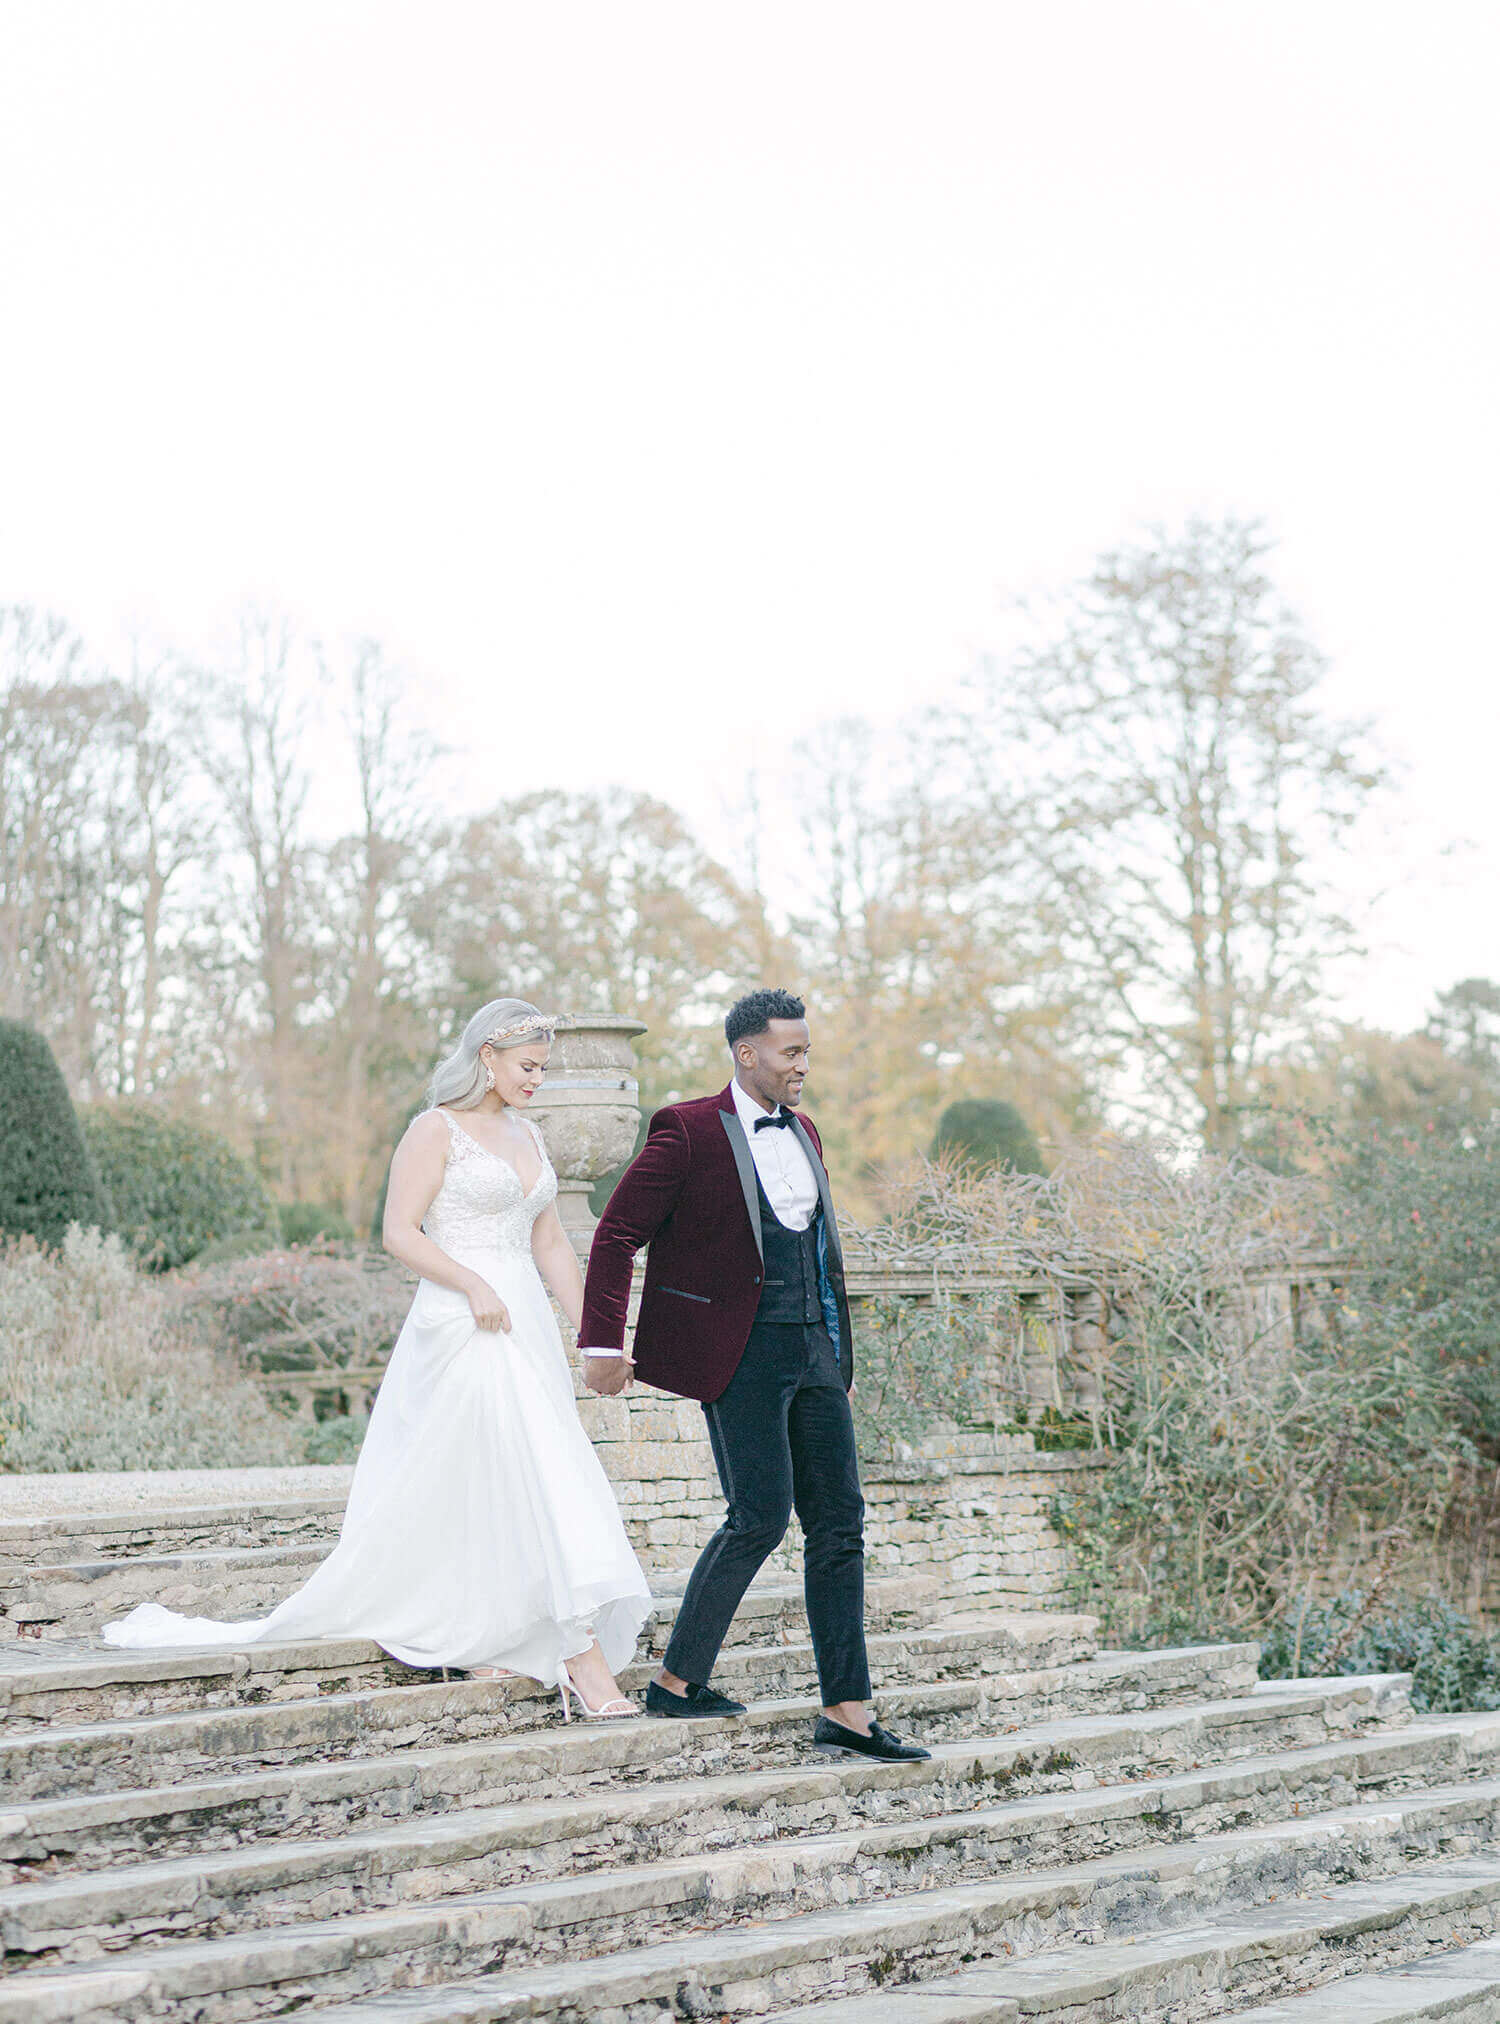 Wedding couple walking down stairs - Wedding planner surrey